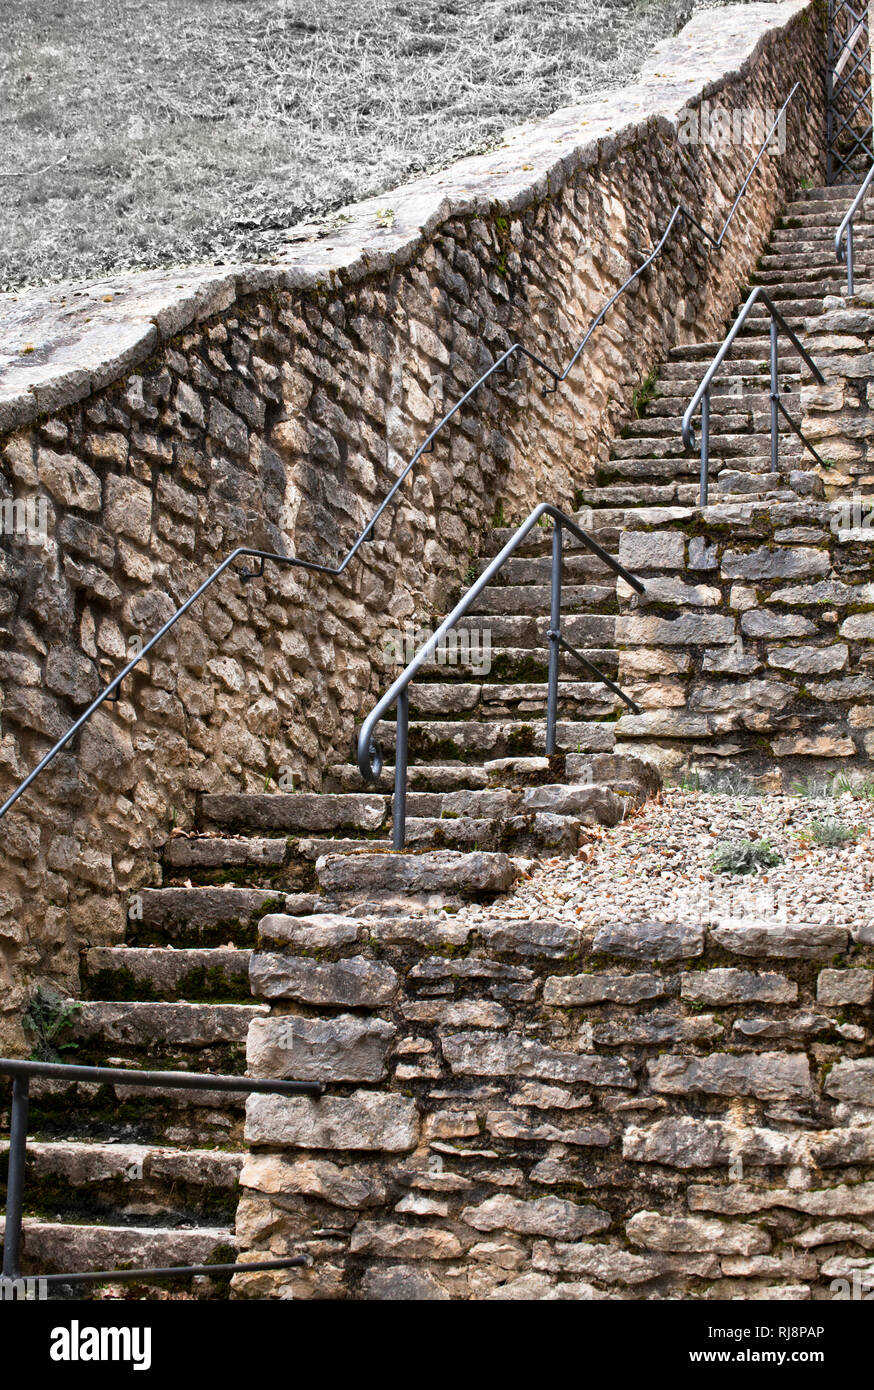 Steintreppe Steintreppe Stock Photos Steintreppe Stock Images Alamy